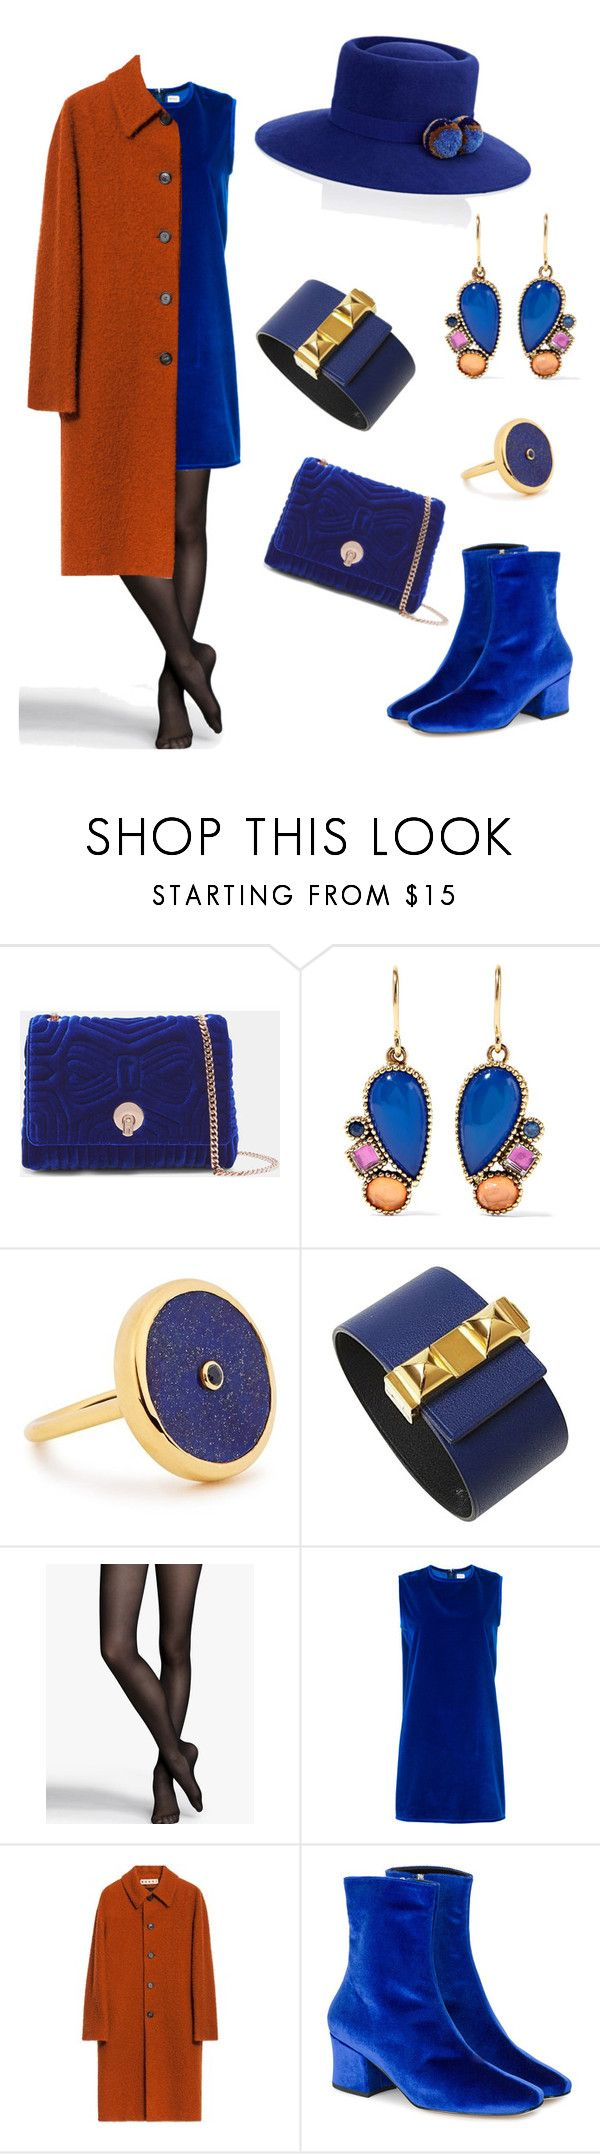 """The Velvet"" by dramainred ❤ liked on Polyvore featuring Ted Baker, Larkspur & Hawk, Lola Rose, Hermès, Express, Maison Rabih Kayrouz, Dorateymur, YOSUZI, fabulous and Elegant"